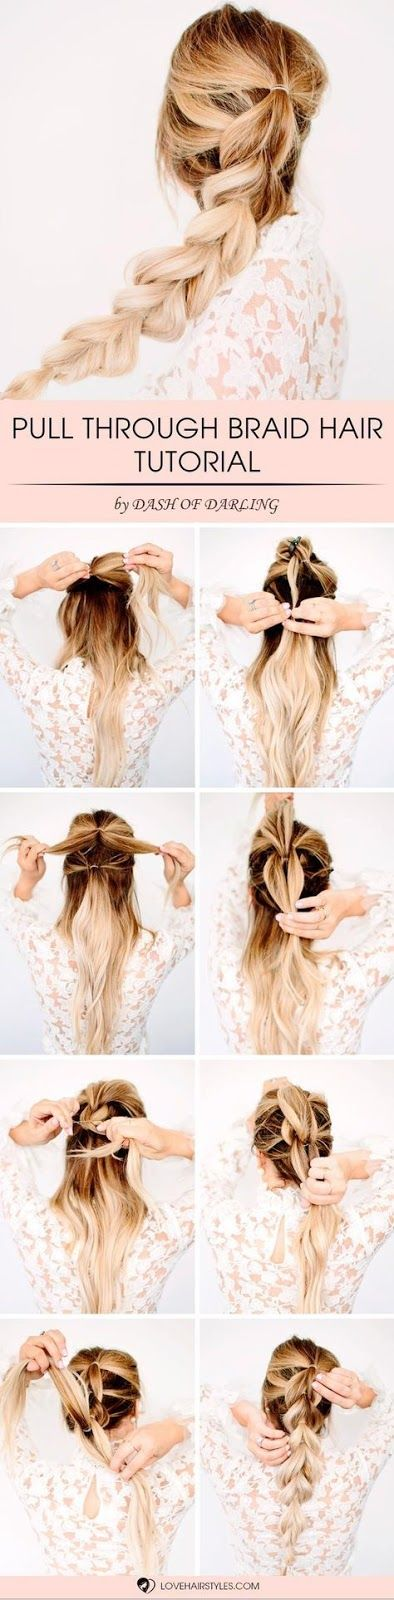 32 Easy Hairstyles Step by Step DIY